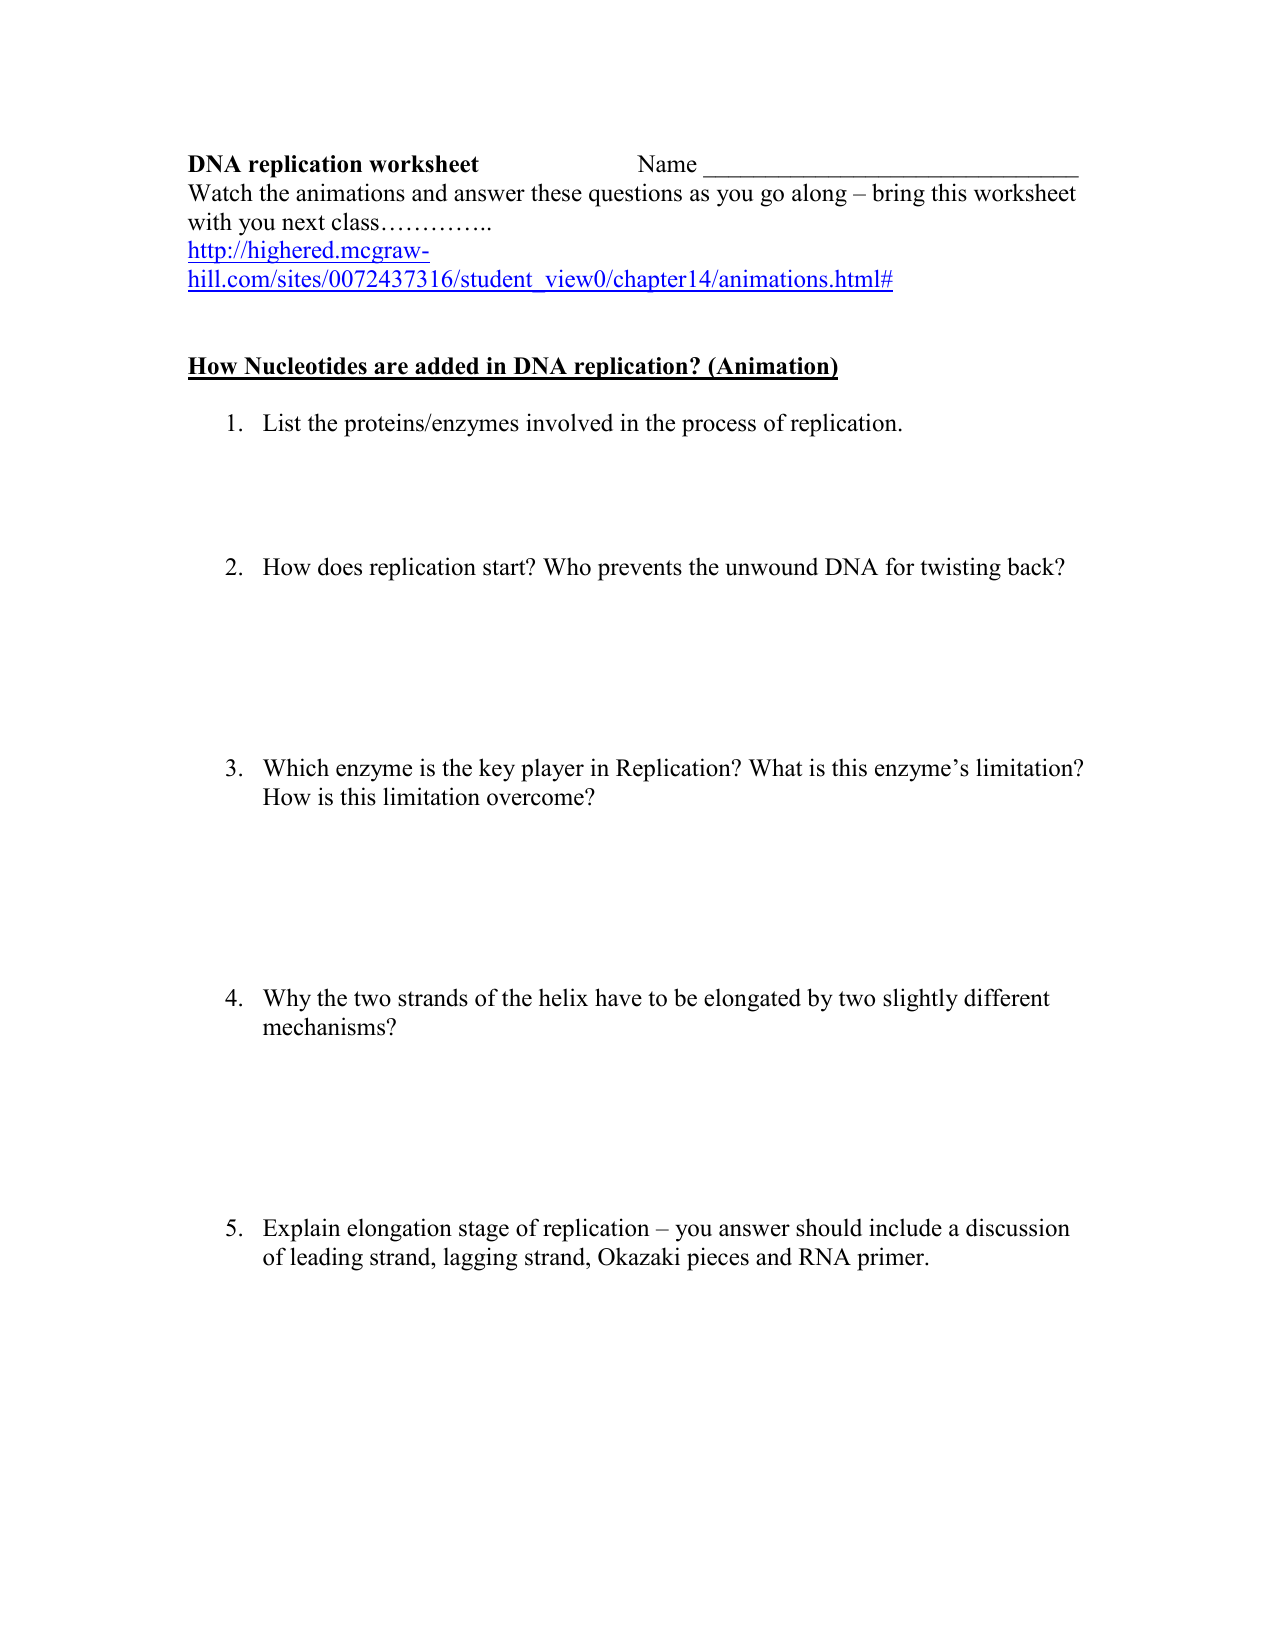 Dna Replication Worksheet Answer Promotiontablecovers [ 1651 x 1275 Pixel ]